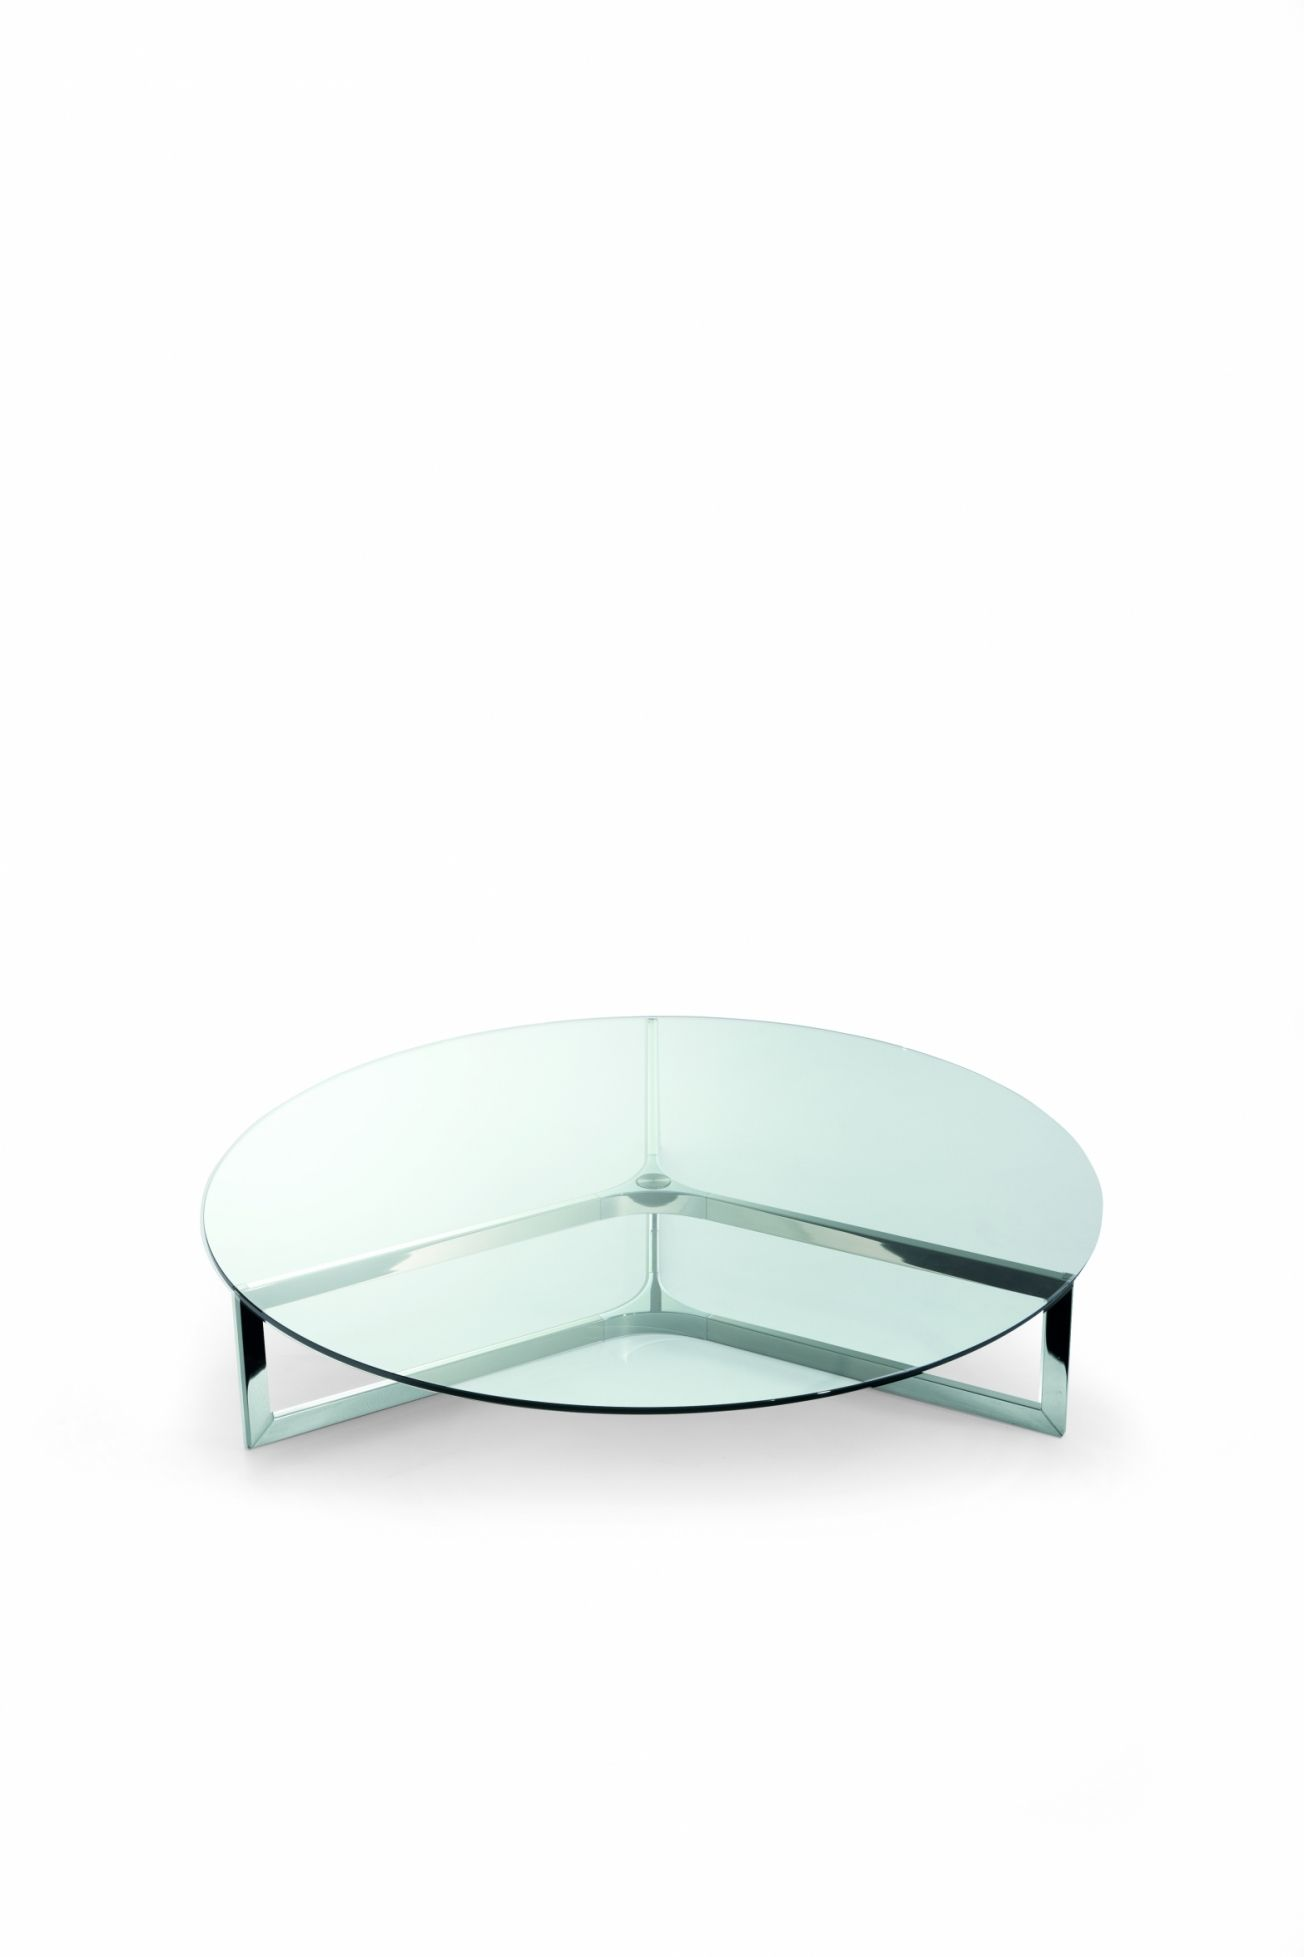 The Raj 1 Circular Coffee Table With A Transparent Glass Table Top And A Stainless Steel Base Available From I Coffee Table Metal Coffee Table Glass Furniture [ 1957 x 1304 Pixel ]